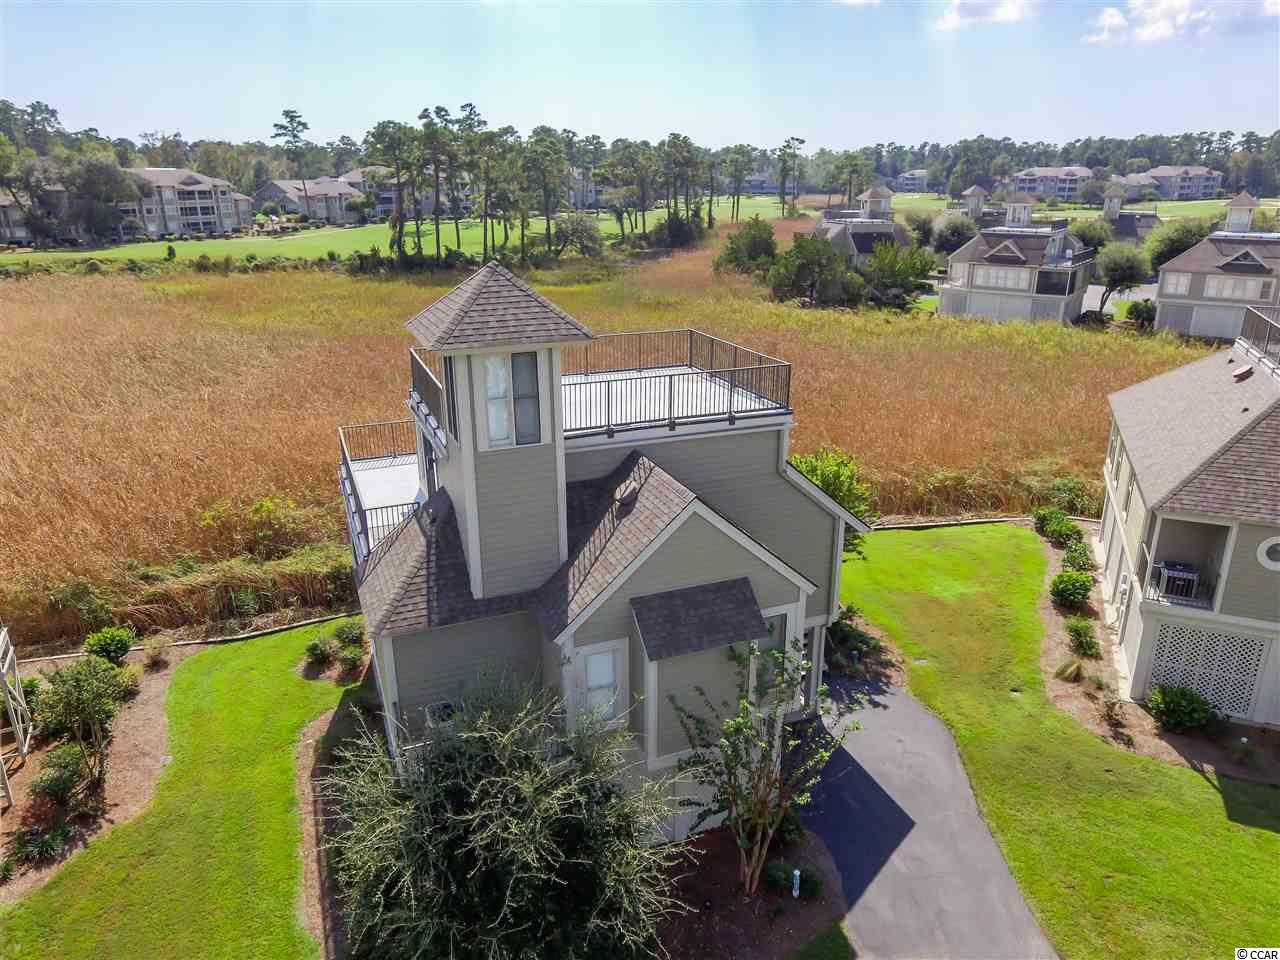 """You will think you arrived on HGTV  --- Affordable views beyond your expectation.  Oh, by the way, the views come with the home!  3 BR, 3 BA and 4 outdoor areas...3 decks and entire ground area beneath the house.  The screened porch allows you to scope serene marsh grasses with the 18th whole of Tidewater in that same view.  Climb the spiral stairs to experience a true """"roof top"""" event.  Enjoy waterway, marsh and golf course panoramic sights.  4 more perks include no landscape work, access to a waterway pier and a community dock for boating/fishing excursions AND no worry about exterior painting!  As this is in a rotation and is included in the monthly HOA fees.  OH, and did I mention all of the other perks of Tidewater such as pool, tennis courts, fitness center and beach cabana!?"""